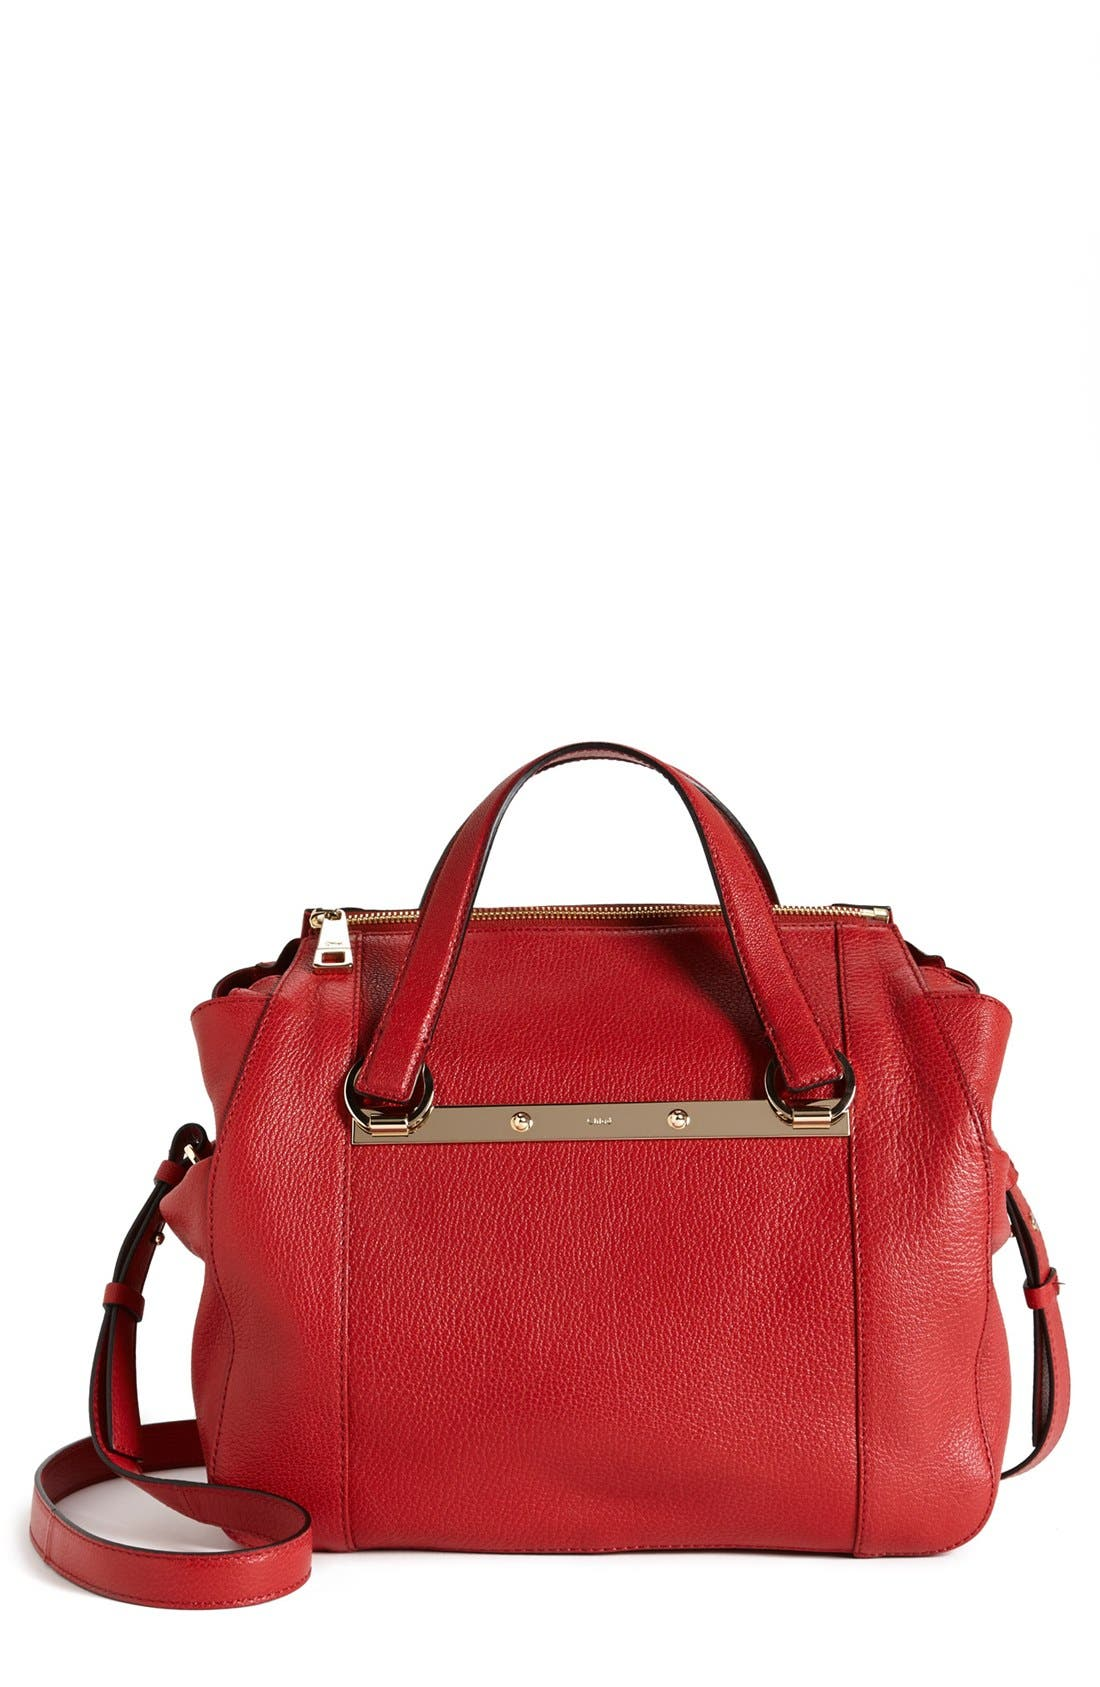 Alternate Image 1 Selected - Chloé 'Bridget - Small' Shoulder Bag